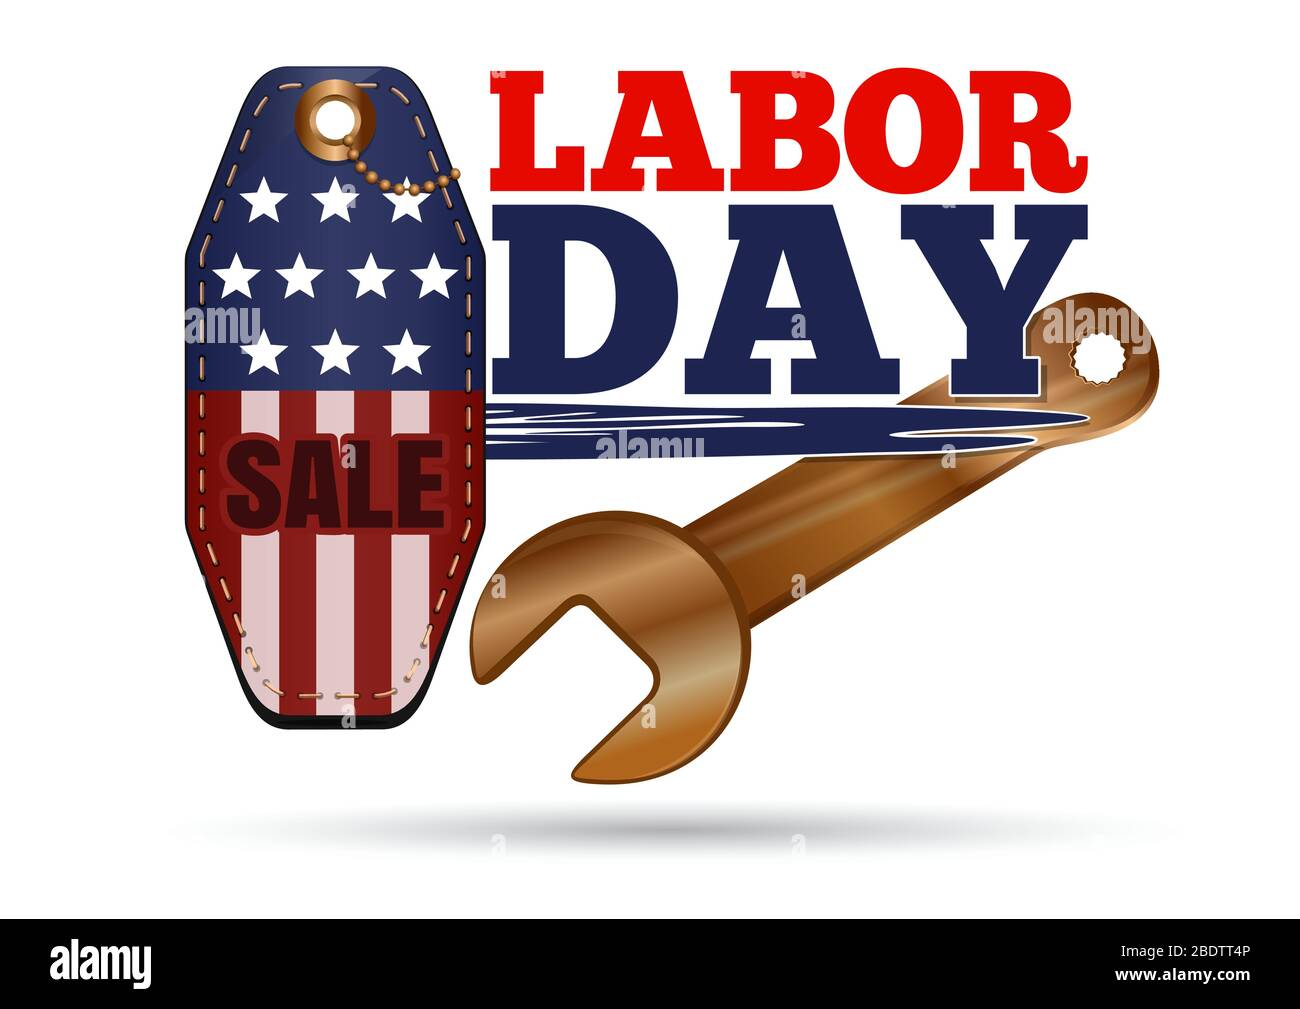 Labor Day Sales Tag Vector Illustration On White Stock Vector Image Art Alamy